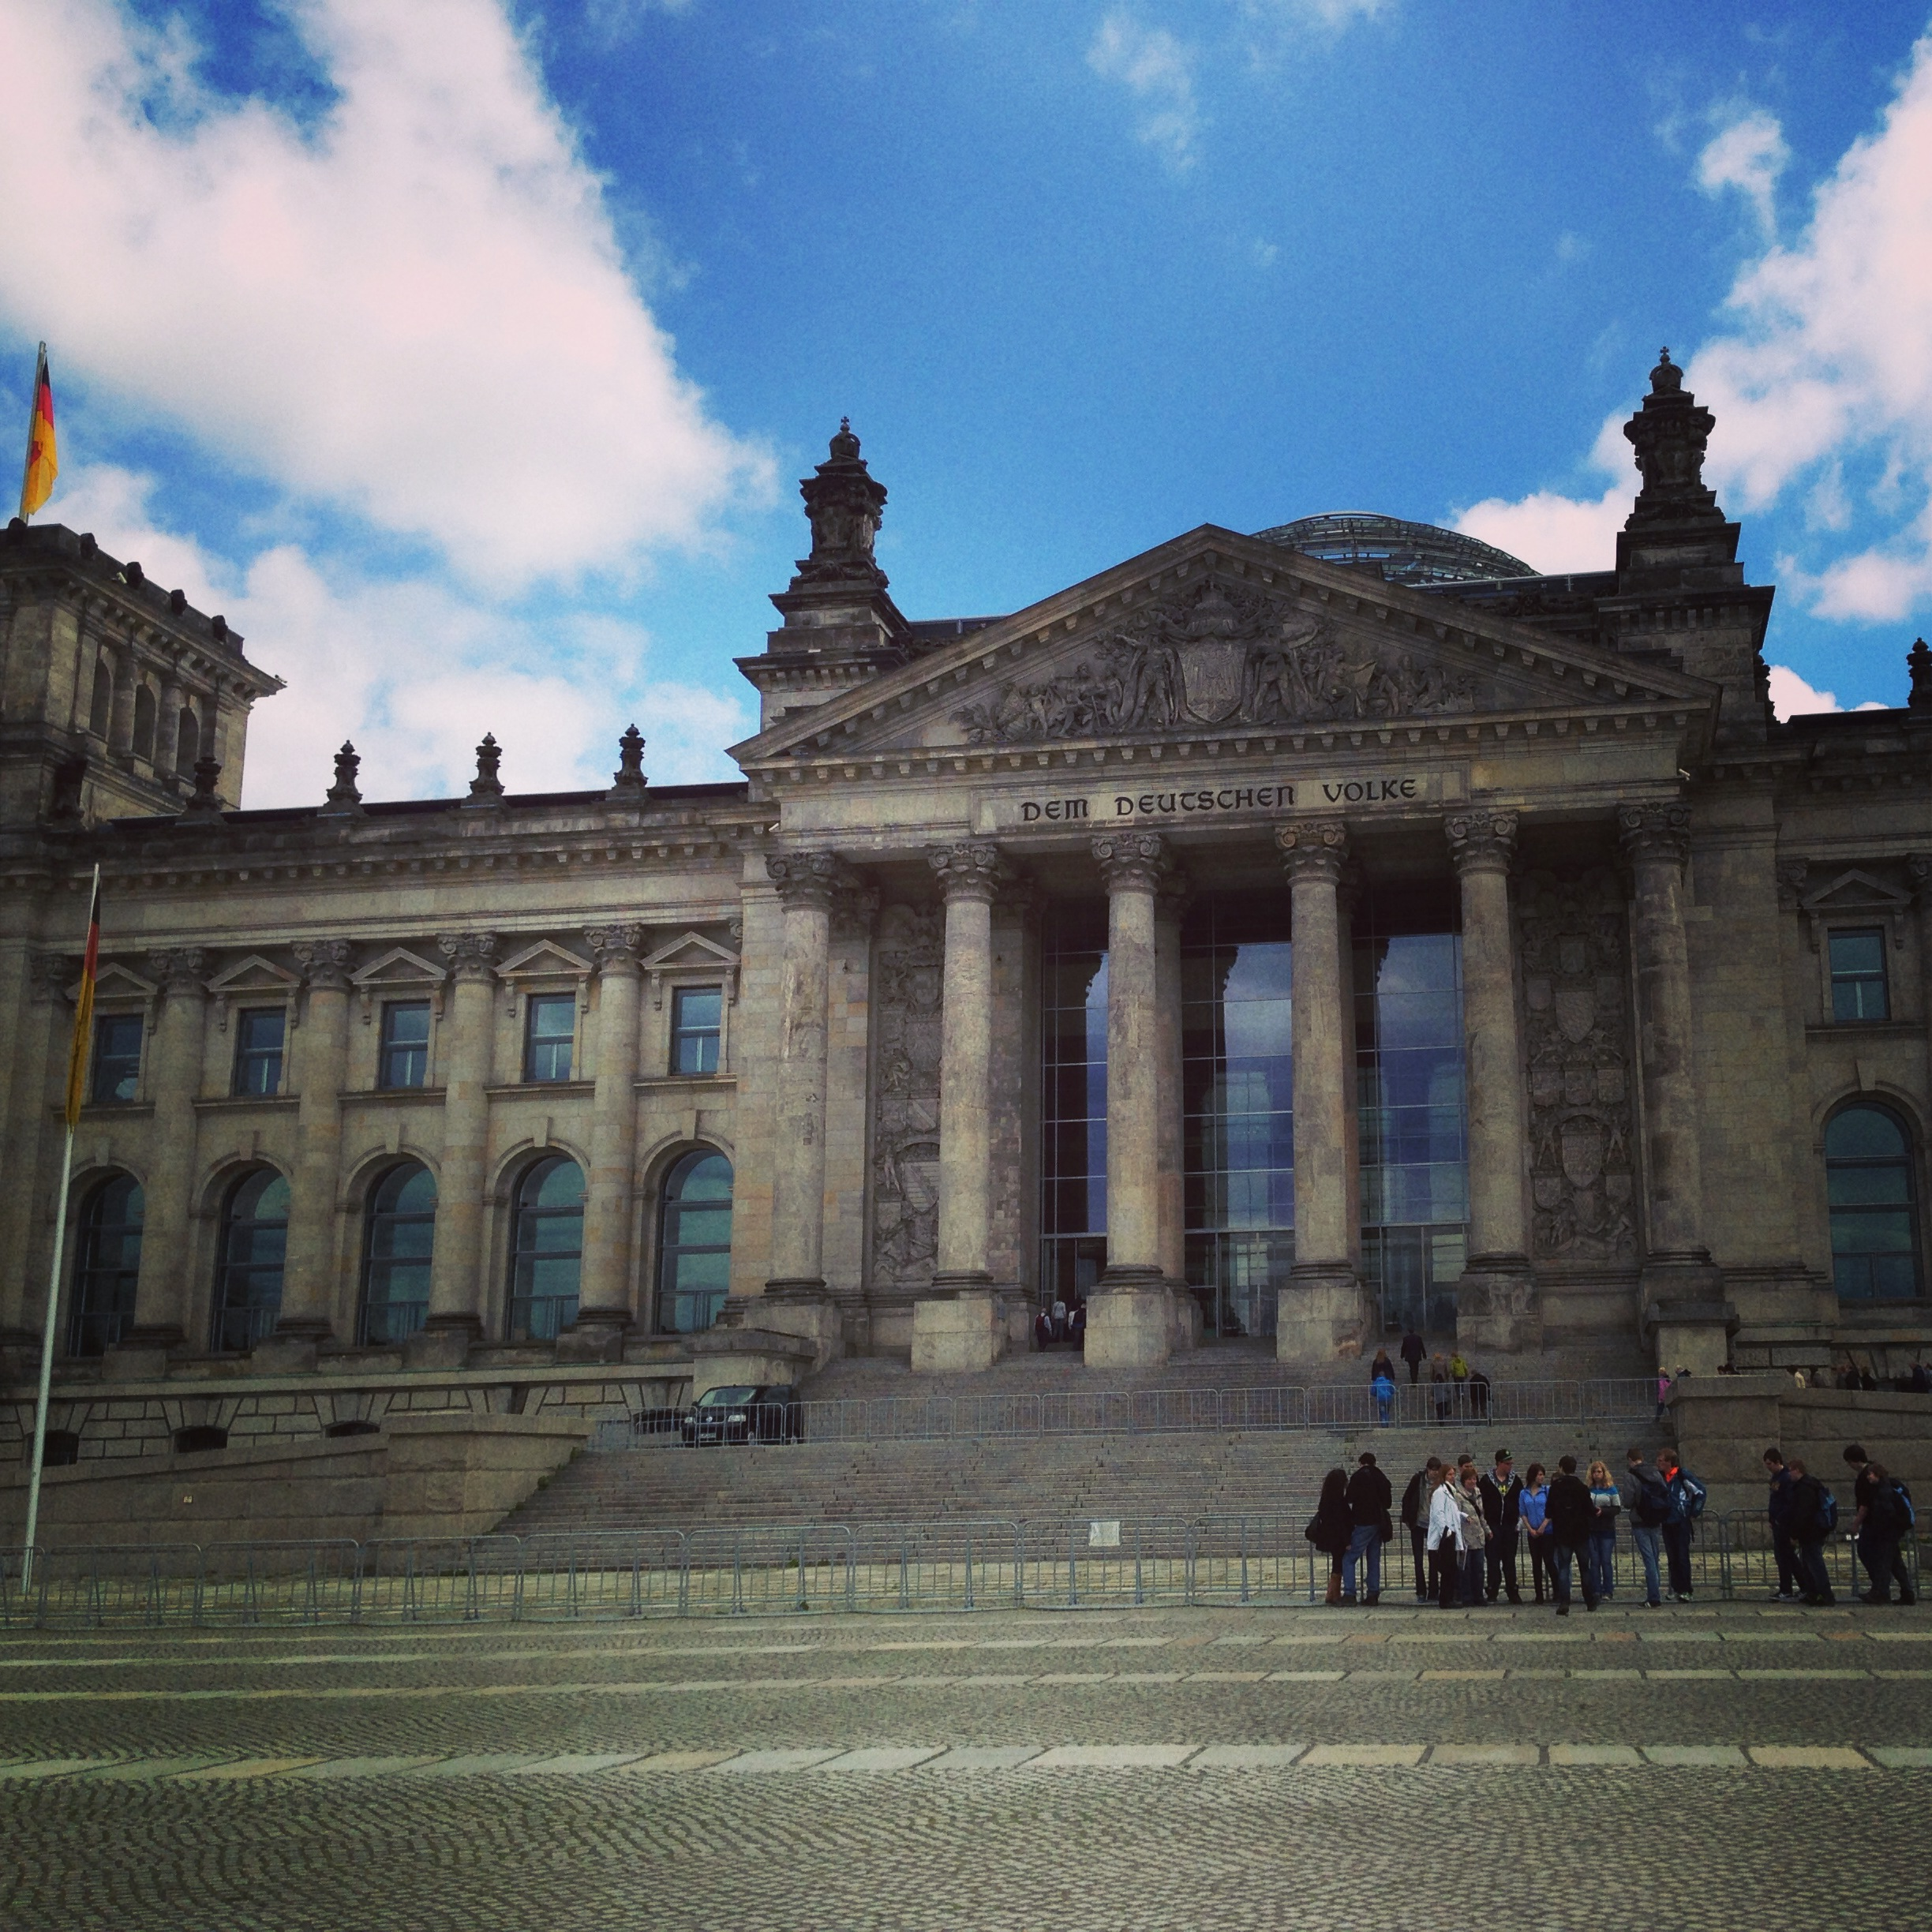 The Reichstag building - Nicole Canning